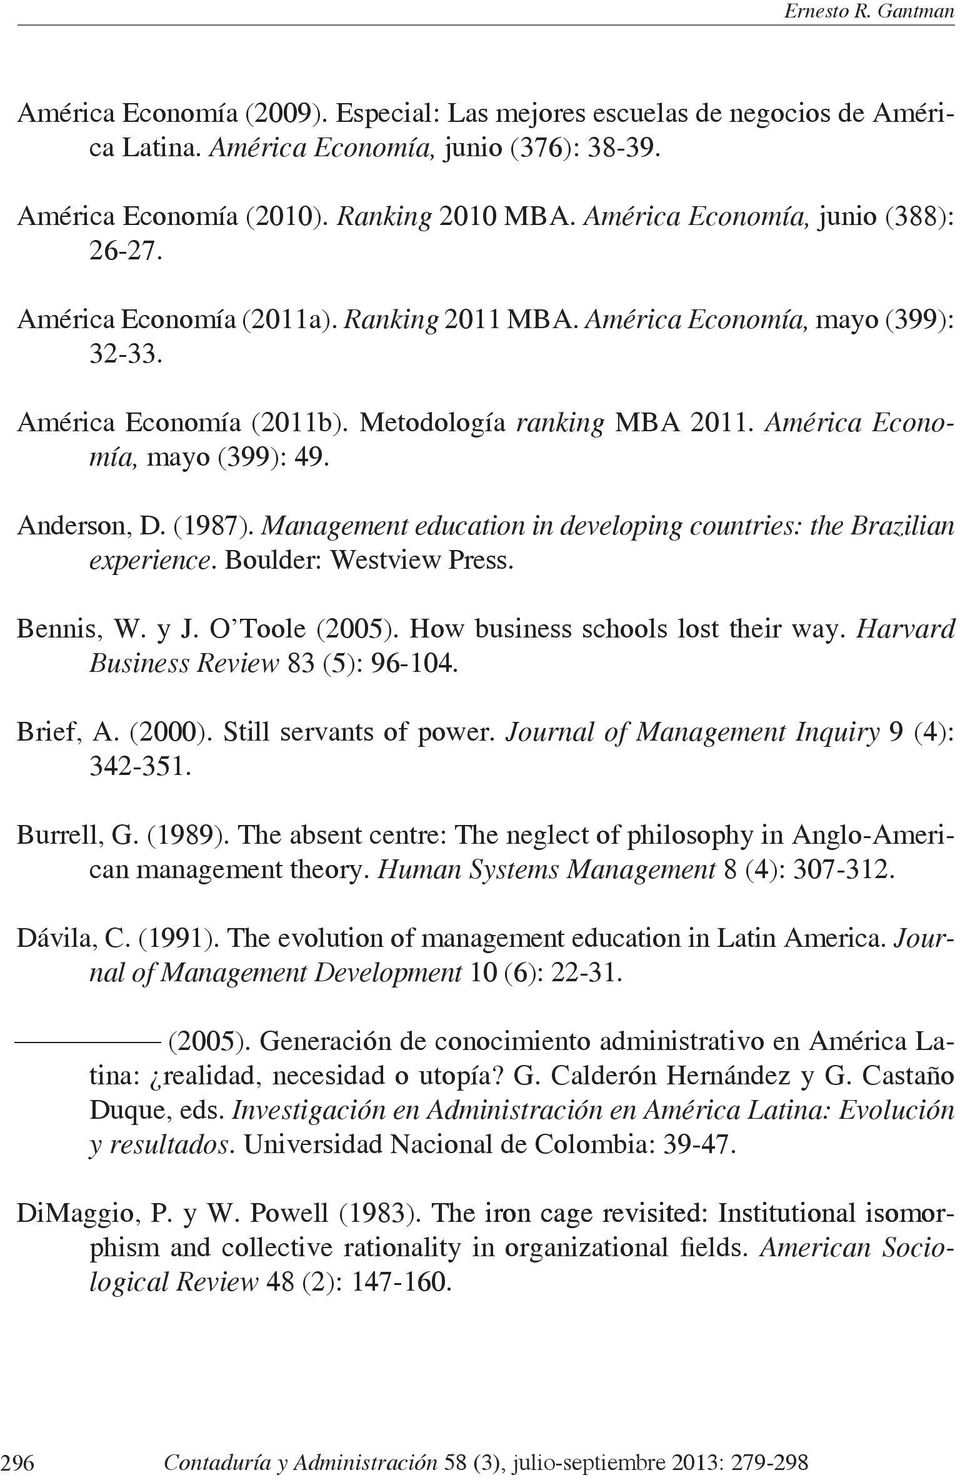 América Economía, mayo (399): 49. Anderson, D. (1987). Management education in developing countries: the Brazilian experience. Boulder: Westview Press. Bennis, W. y J. O Toole (2005).